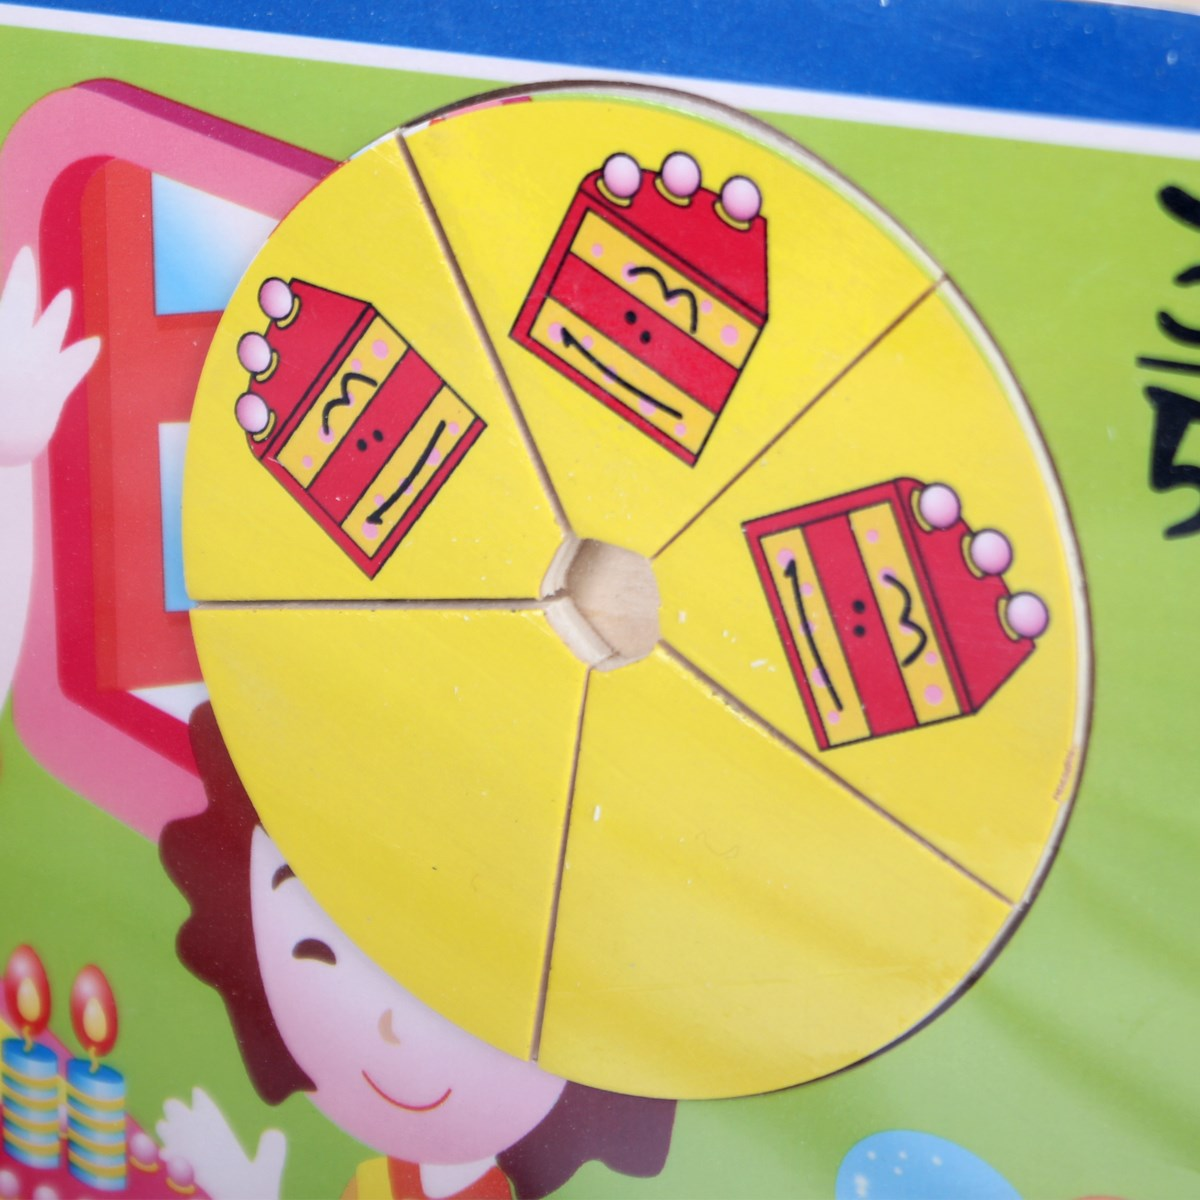 Do choi go Toptoys - Bang ghep hinh phan so 98259